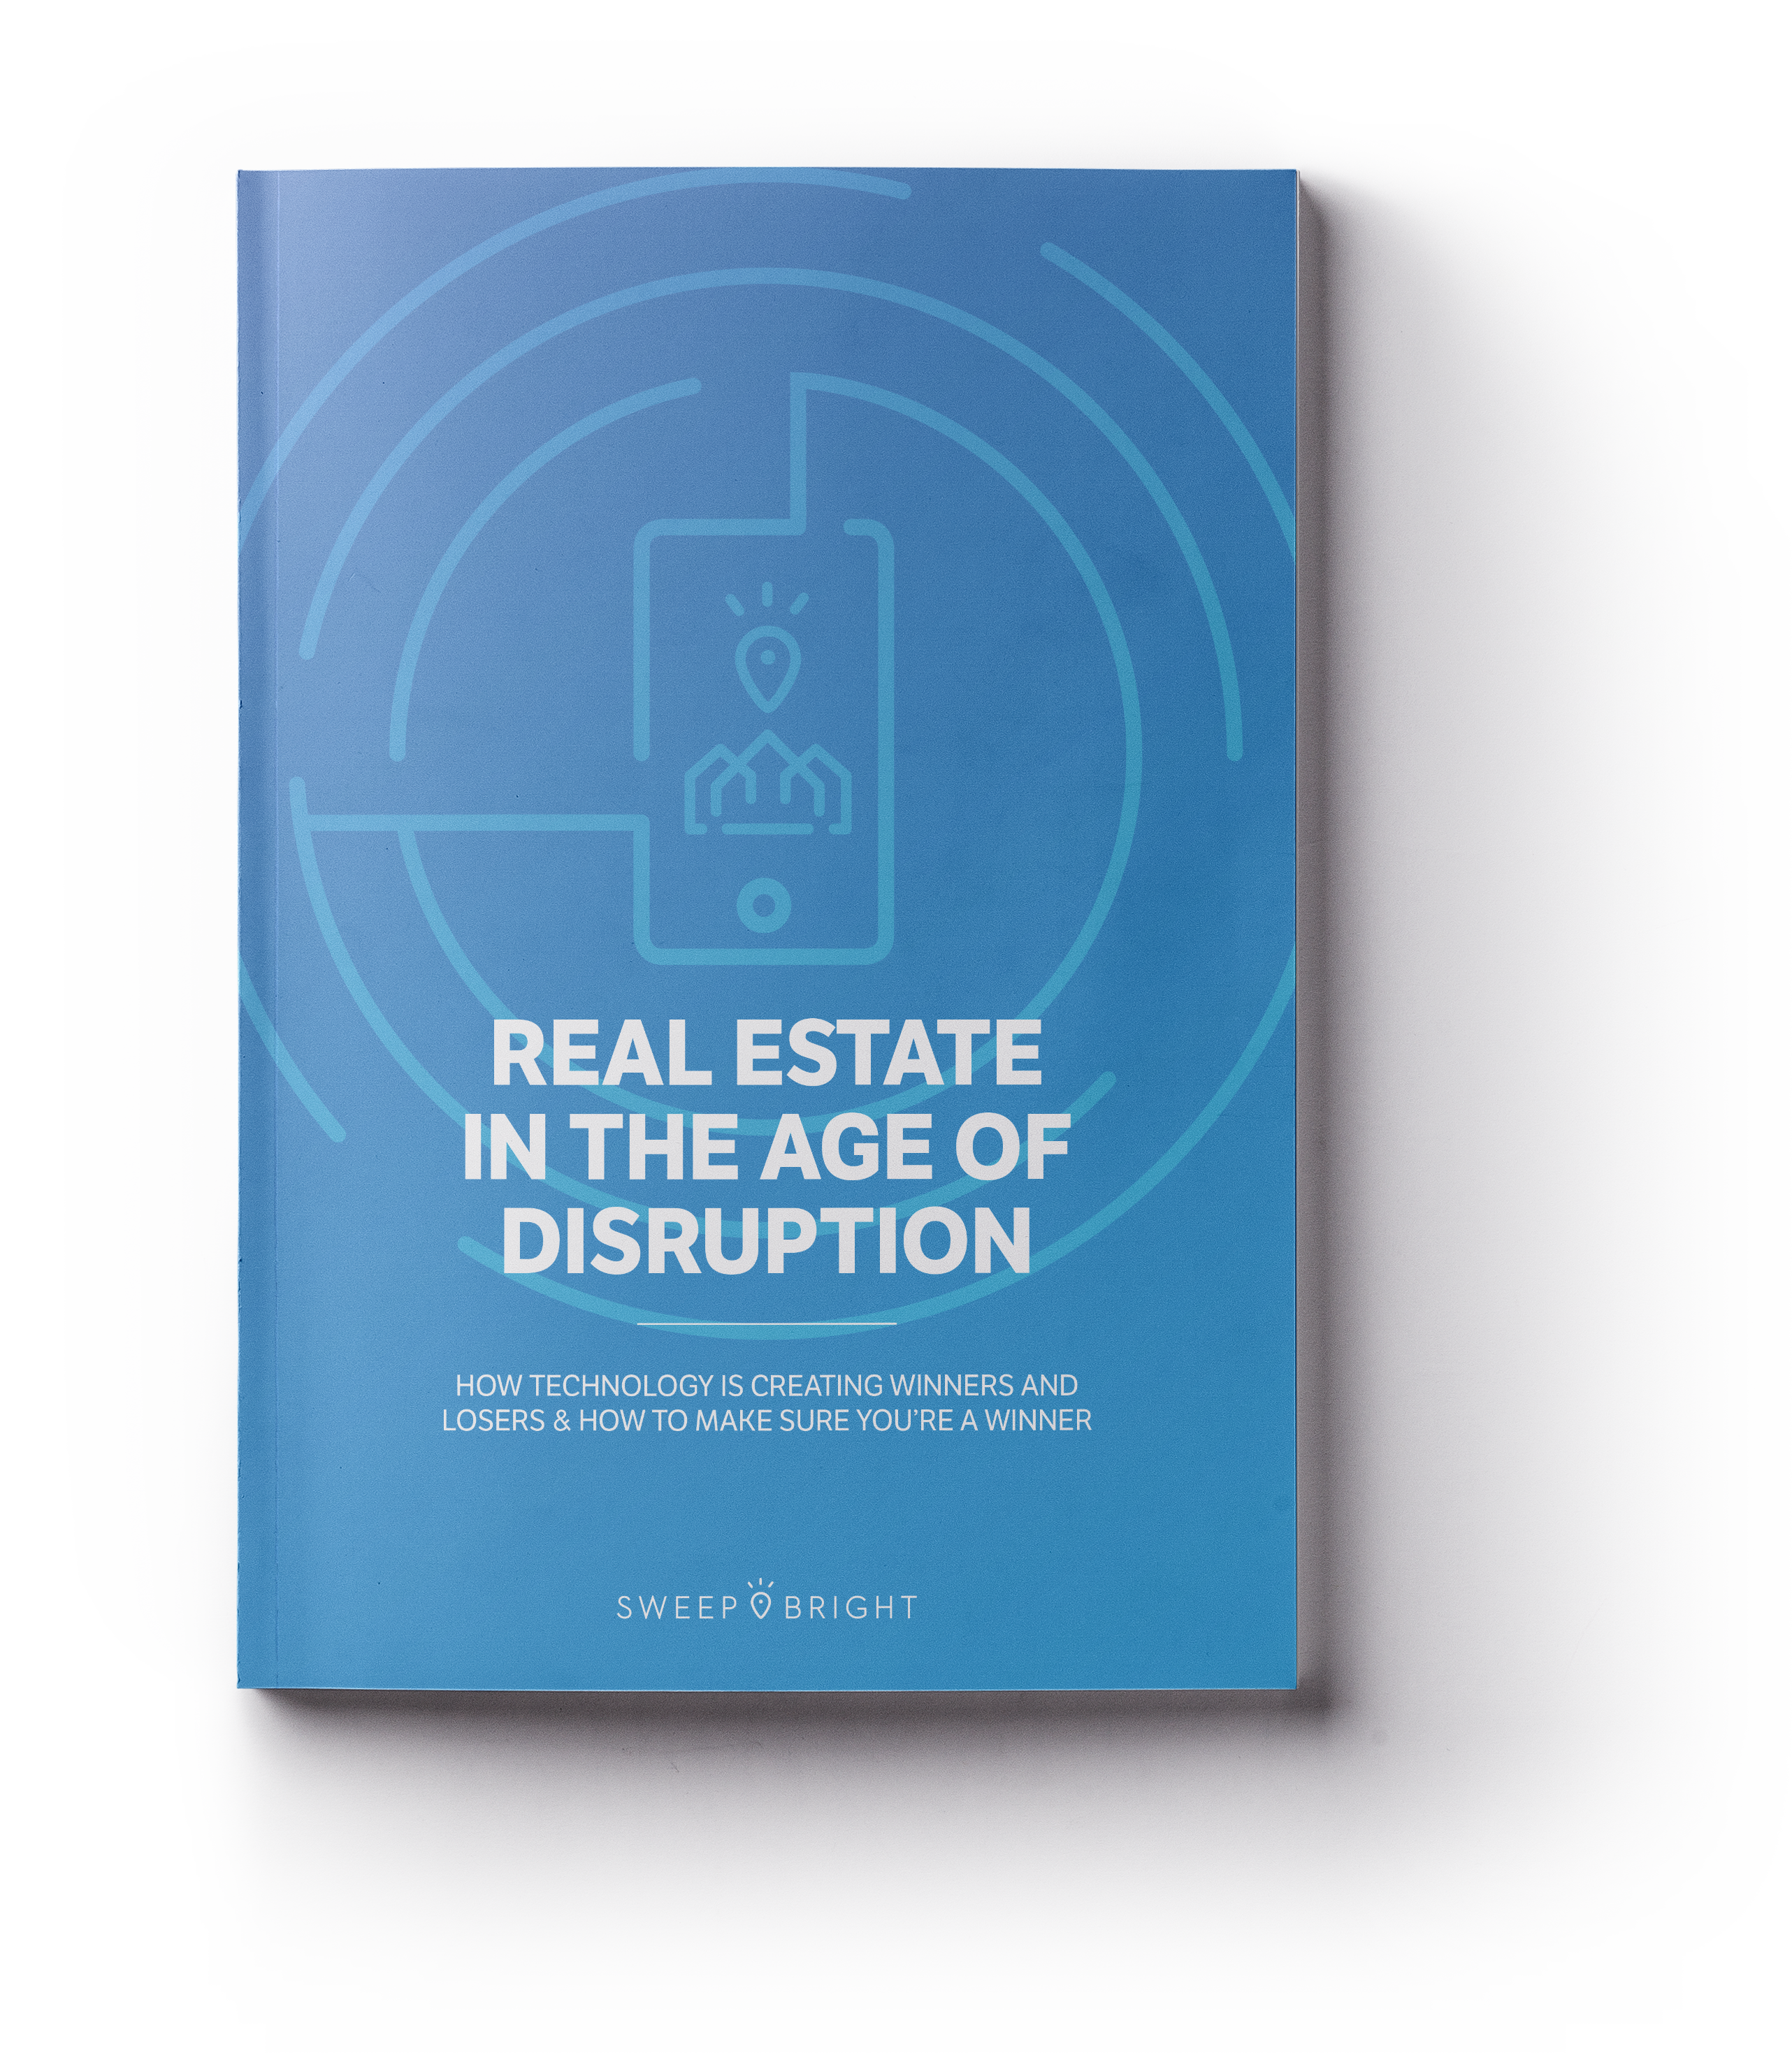 Real estate in the age of disruption